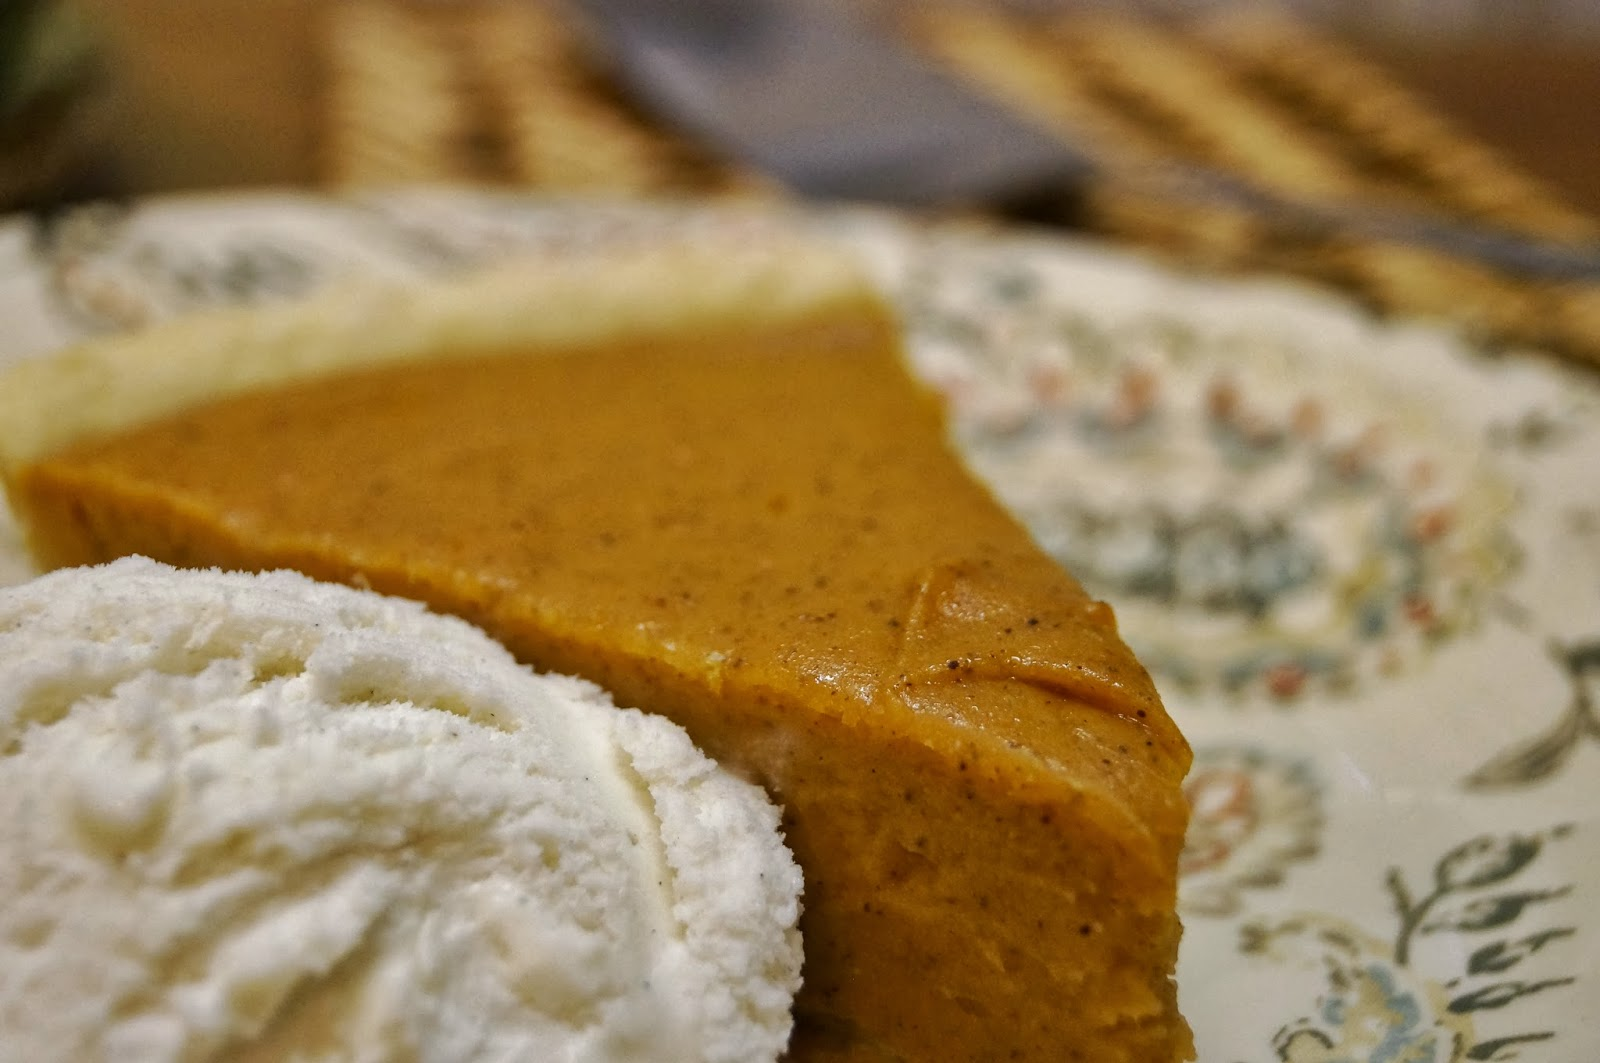 Homemade sweet potato pie is comfort food. Each bite warms my heart ...